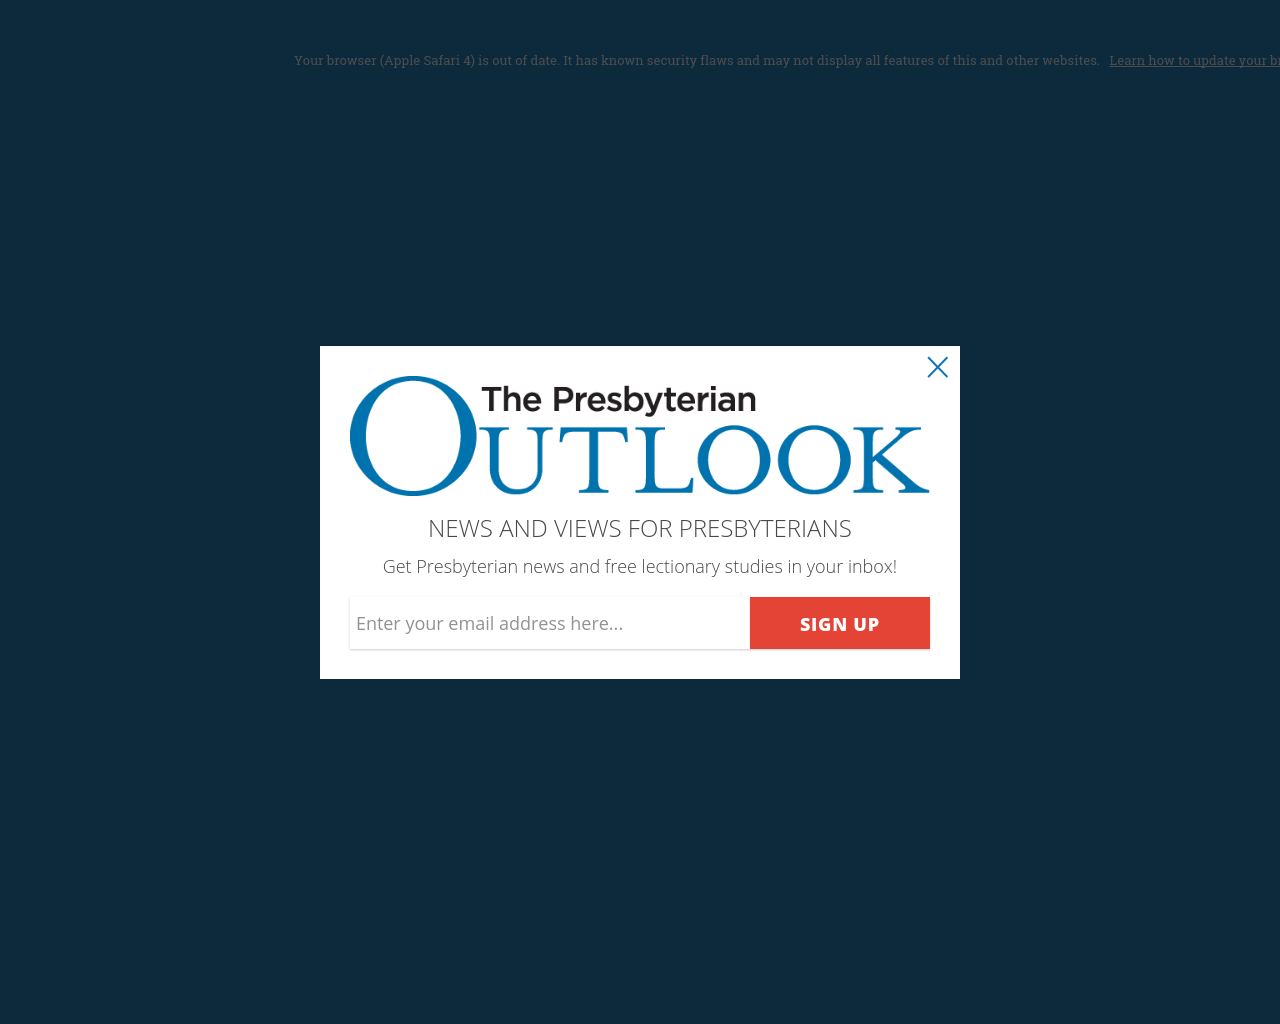 The-Presbyterian-Outlook-Advertising-Reviews-Pricing